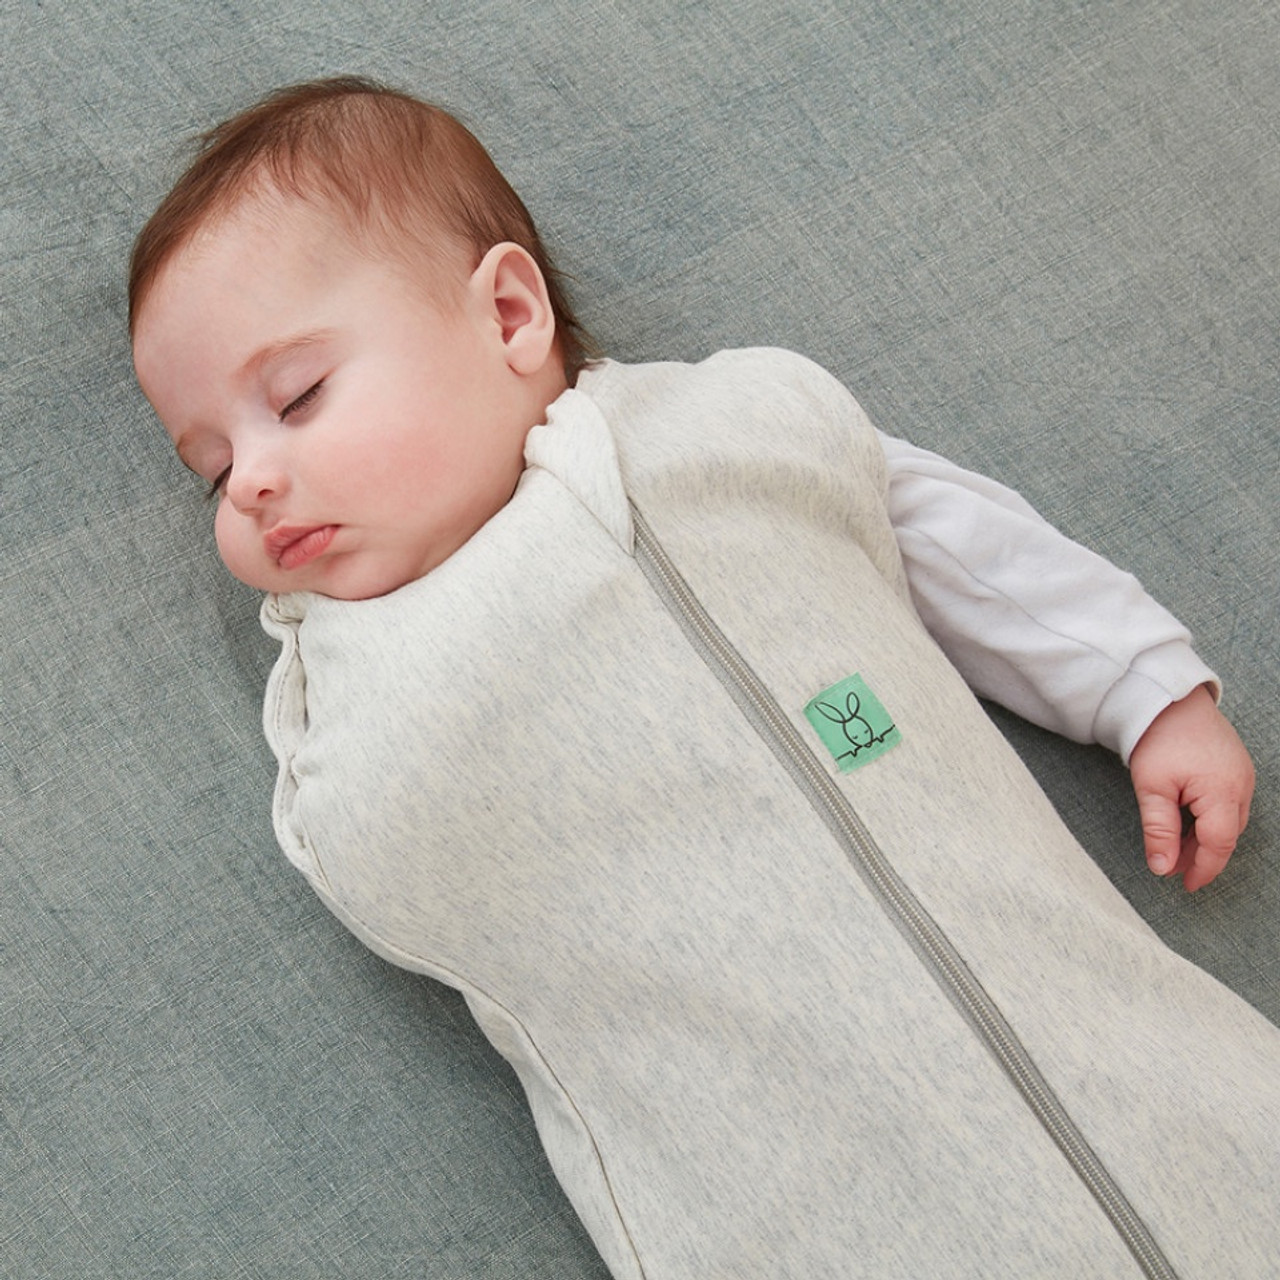 Ergopouch Cocoon Swaddle Bag 1.0 tog Preemie 0000M at Baby Barn Discounts Ergopouch cocoon swaddle now in the preemie size range perfect for night sleep.